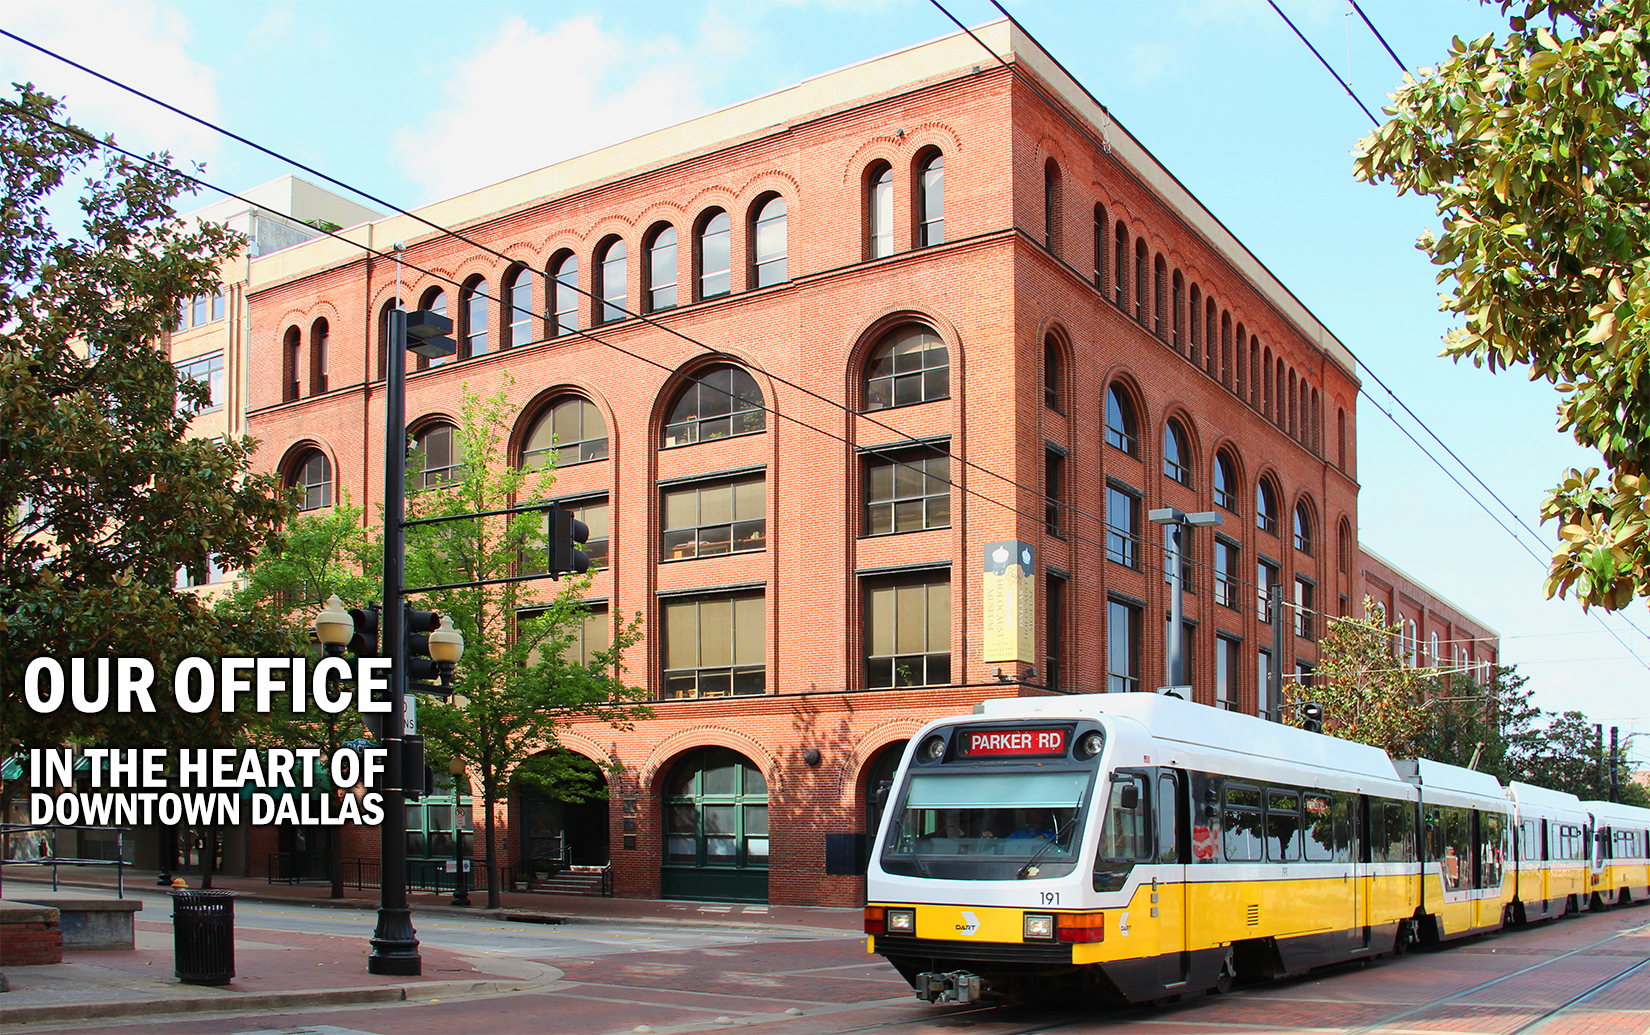 Our office exterior with DART train AND TEXT.jpg